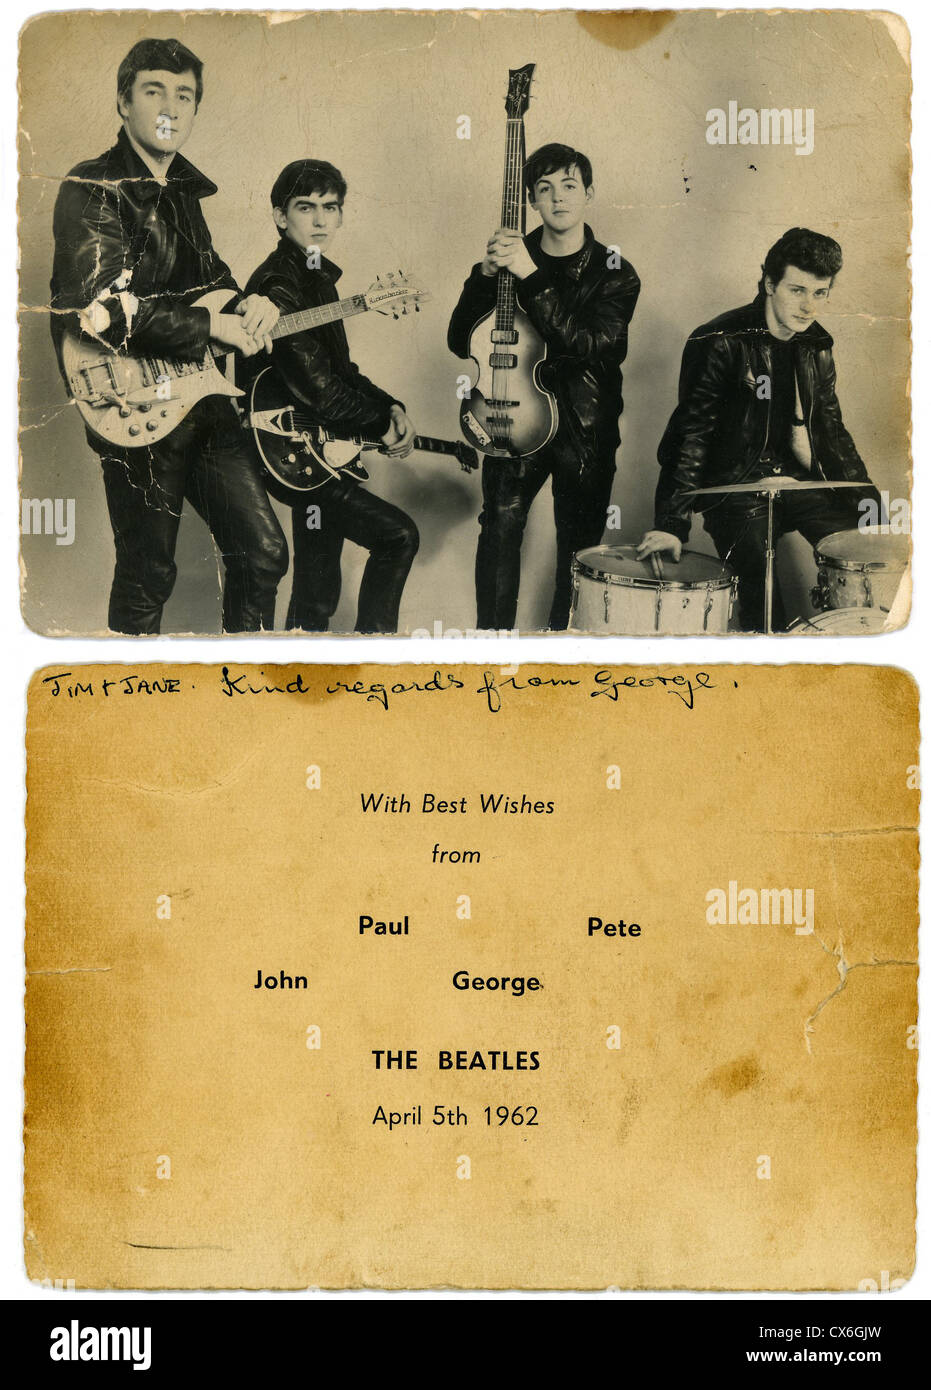 000498 - The Beatles 1962 Early Promotional Card - Stock Image